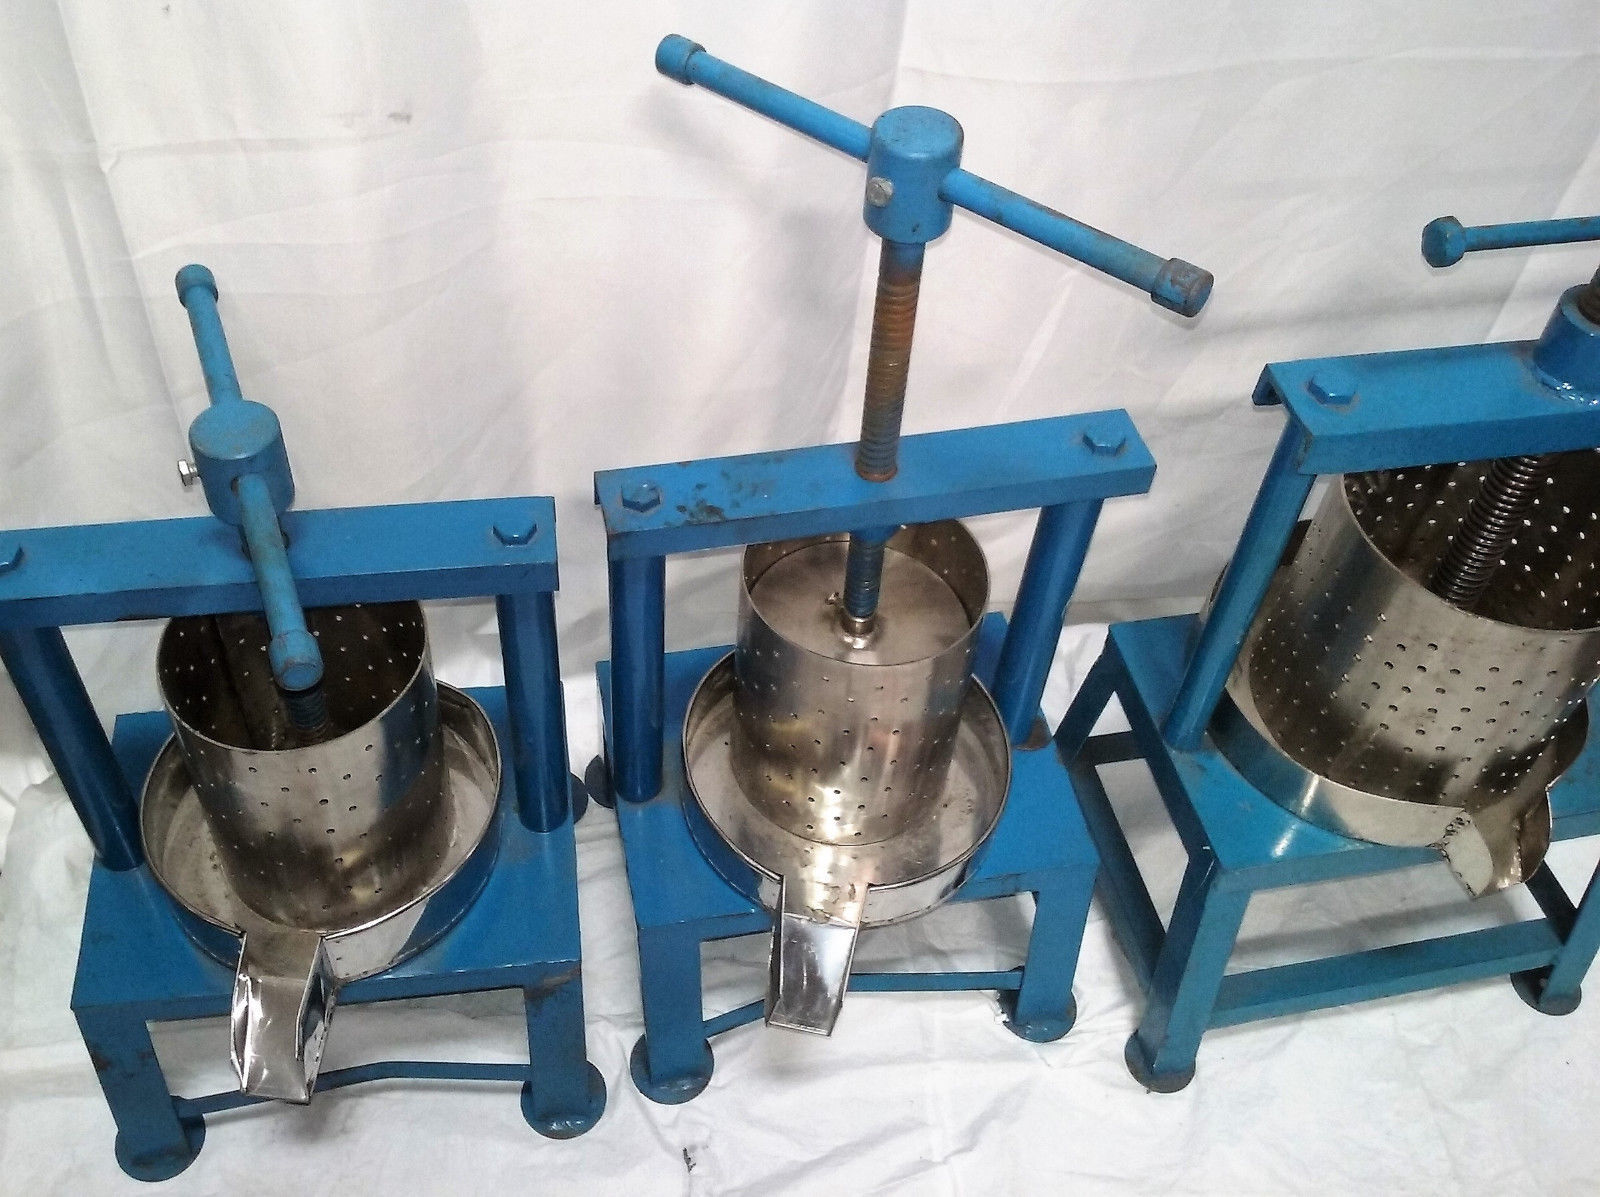 Industrial Juicers Lot Of 3 2 small and 1 large Commercial Kitchen Equipment image 2